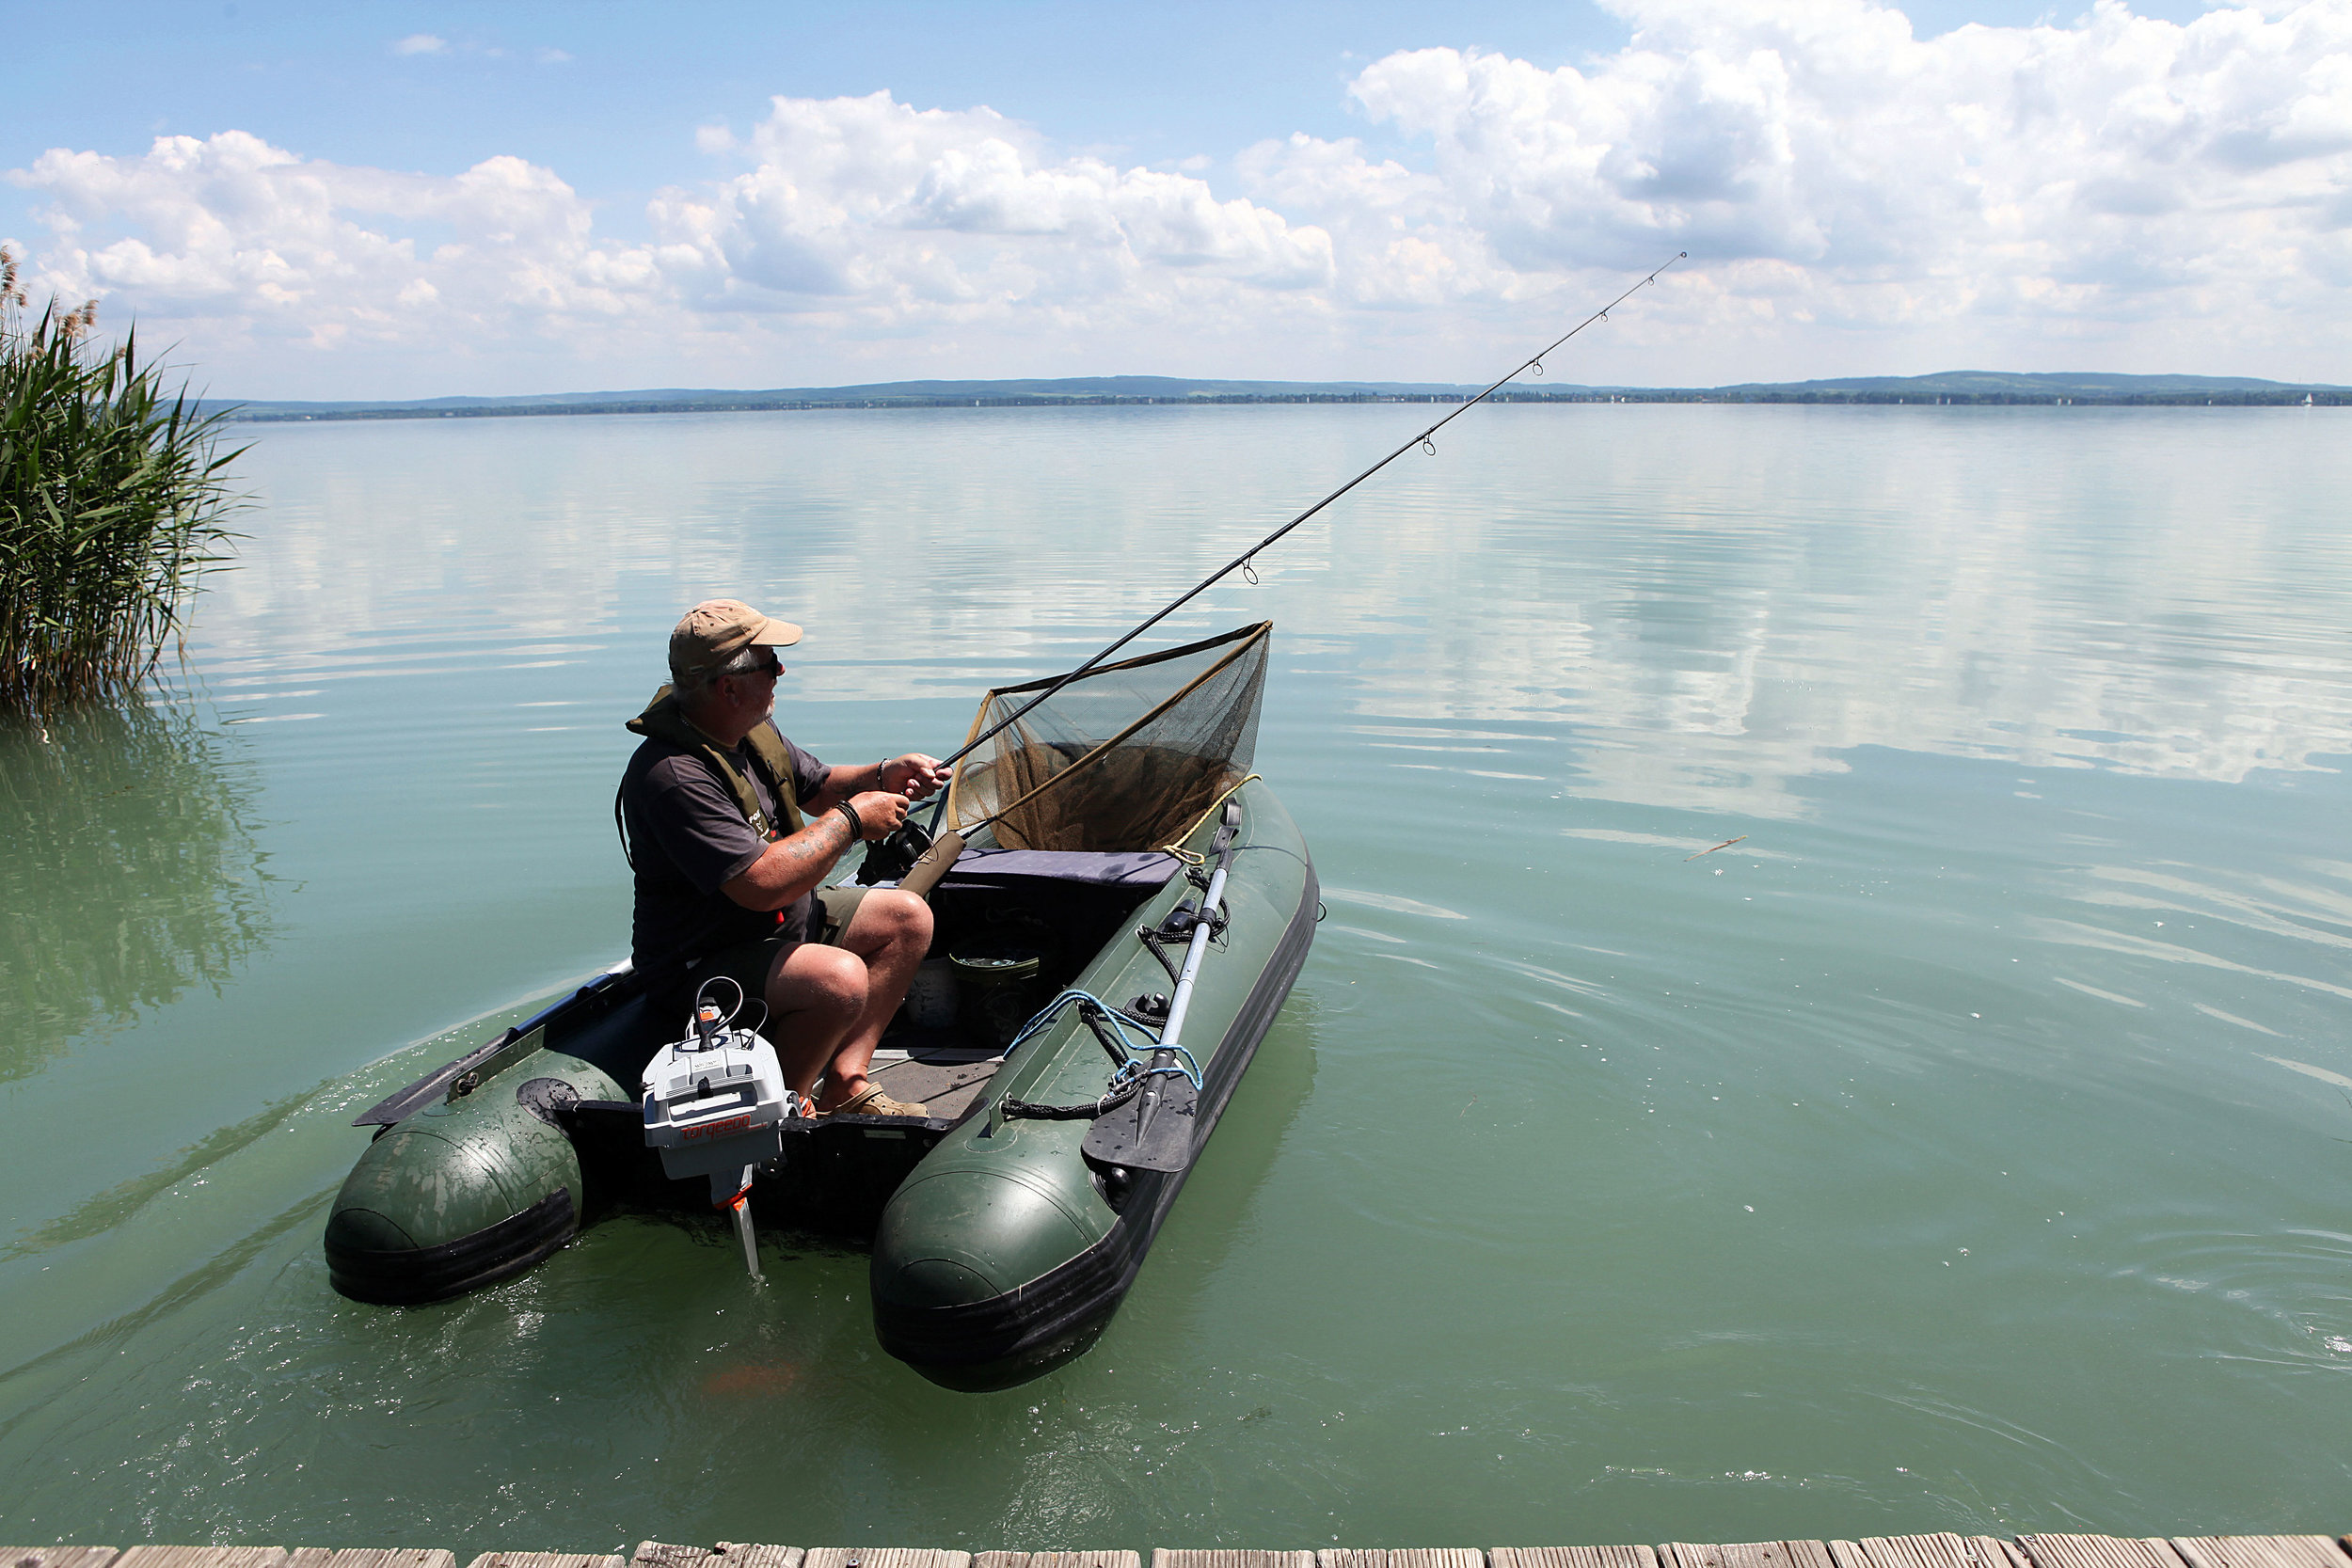 9-Heading-out-for-battle---I-loved-being-out-on-the-water!.jpg